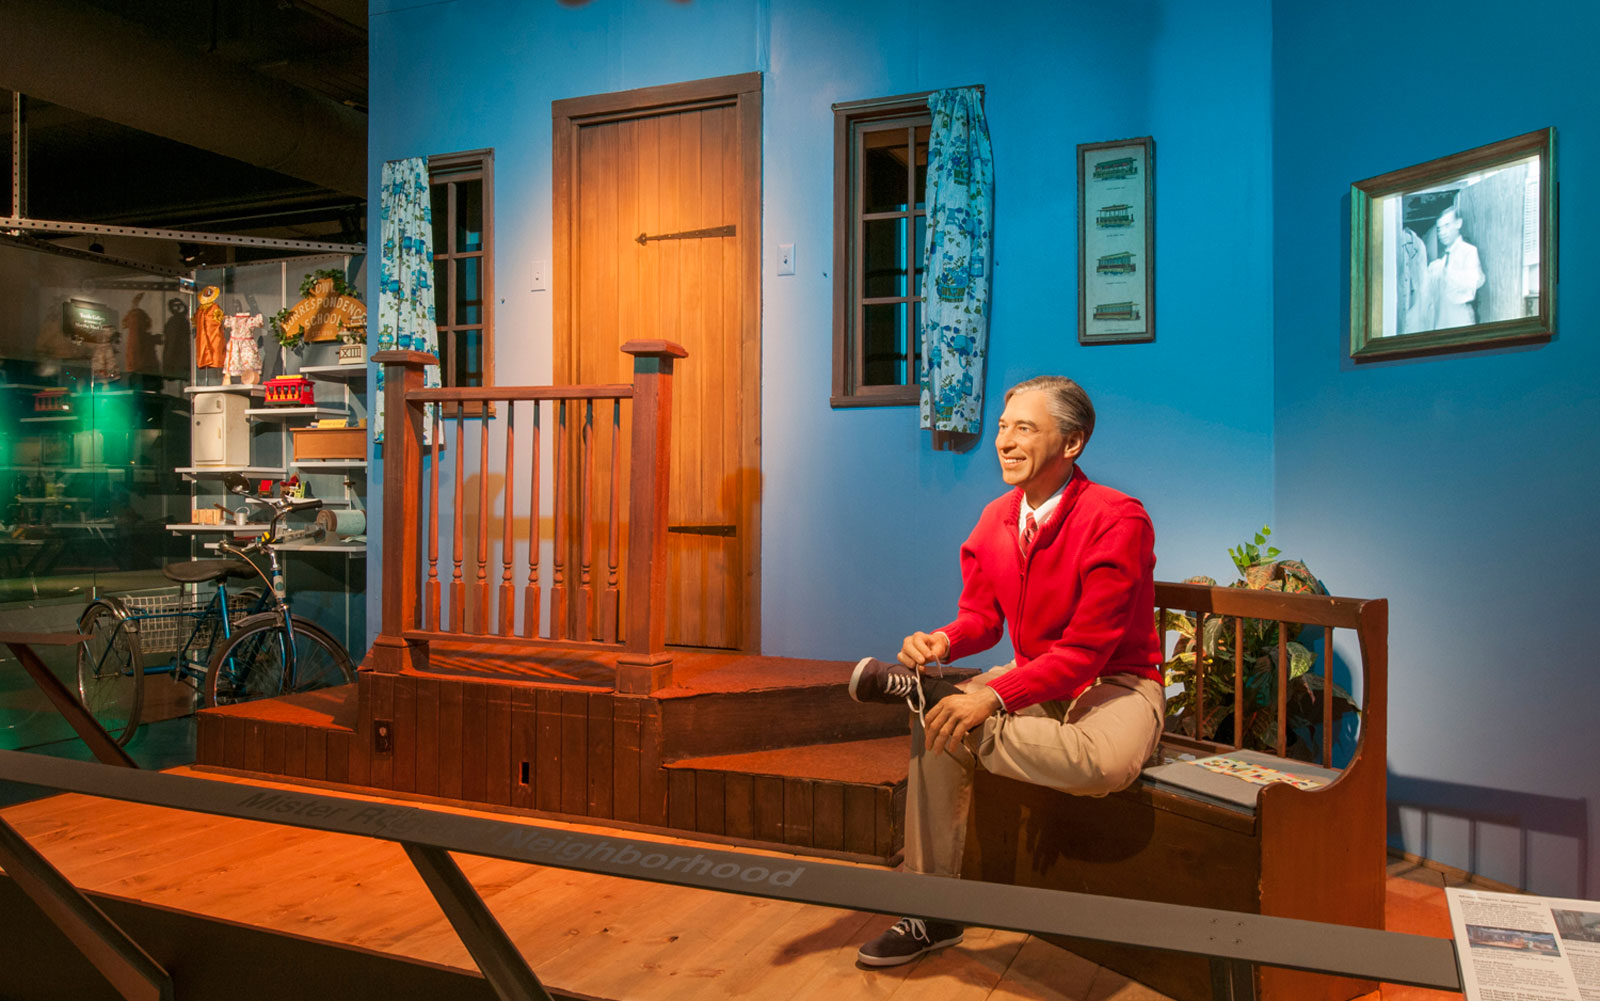 """The """"Mister Rogers' Neighborhood"""" exhibit at the Senator John Heinz History Center houses the largest collection of original items from the show's set."""